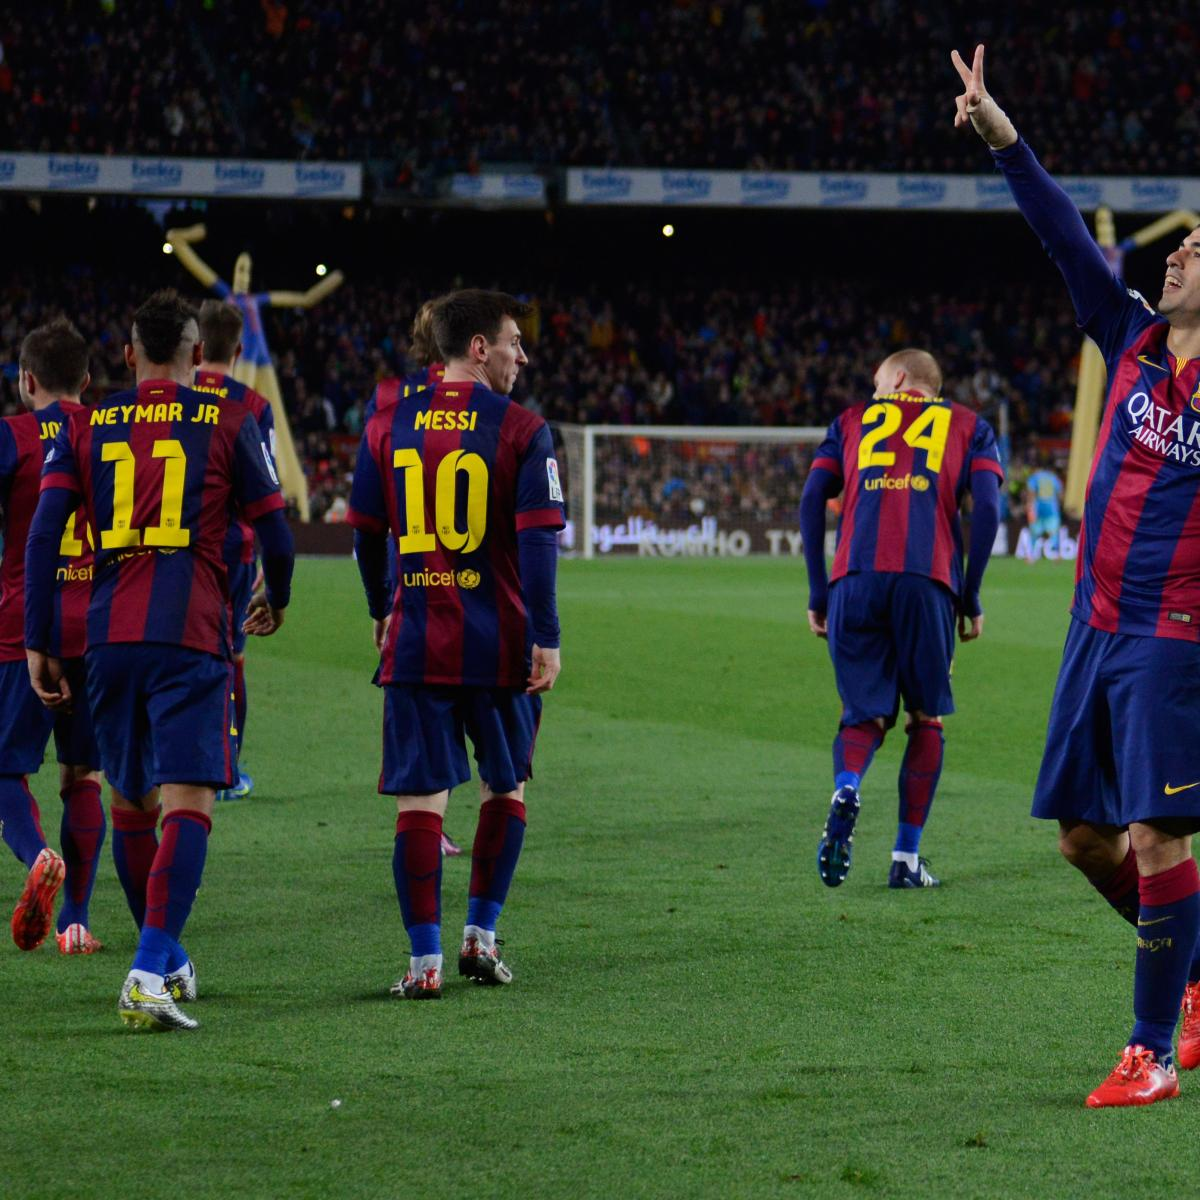 Apoel Vs Barcelona Score Grades And Reaction From: Barcelona Vs. Real Madrid: Score, Grades And Reaction From